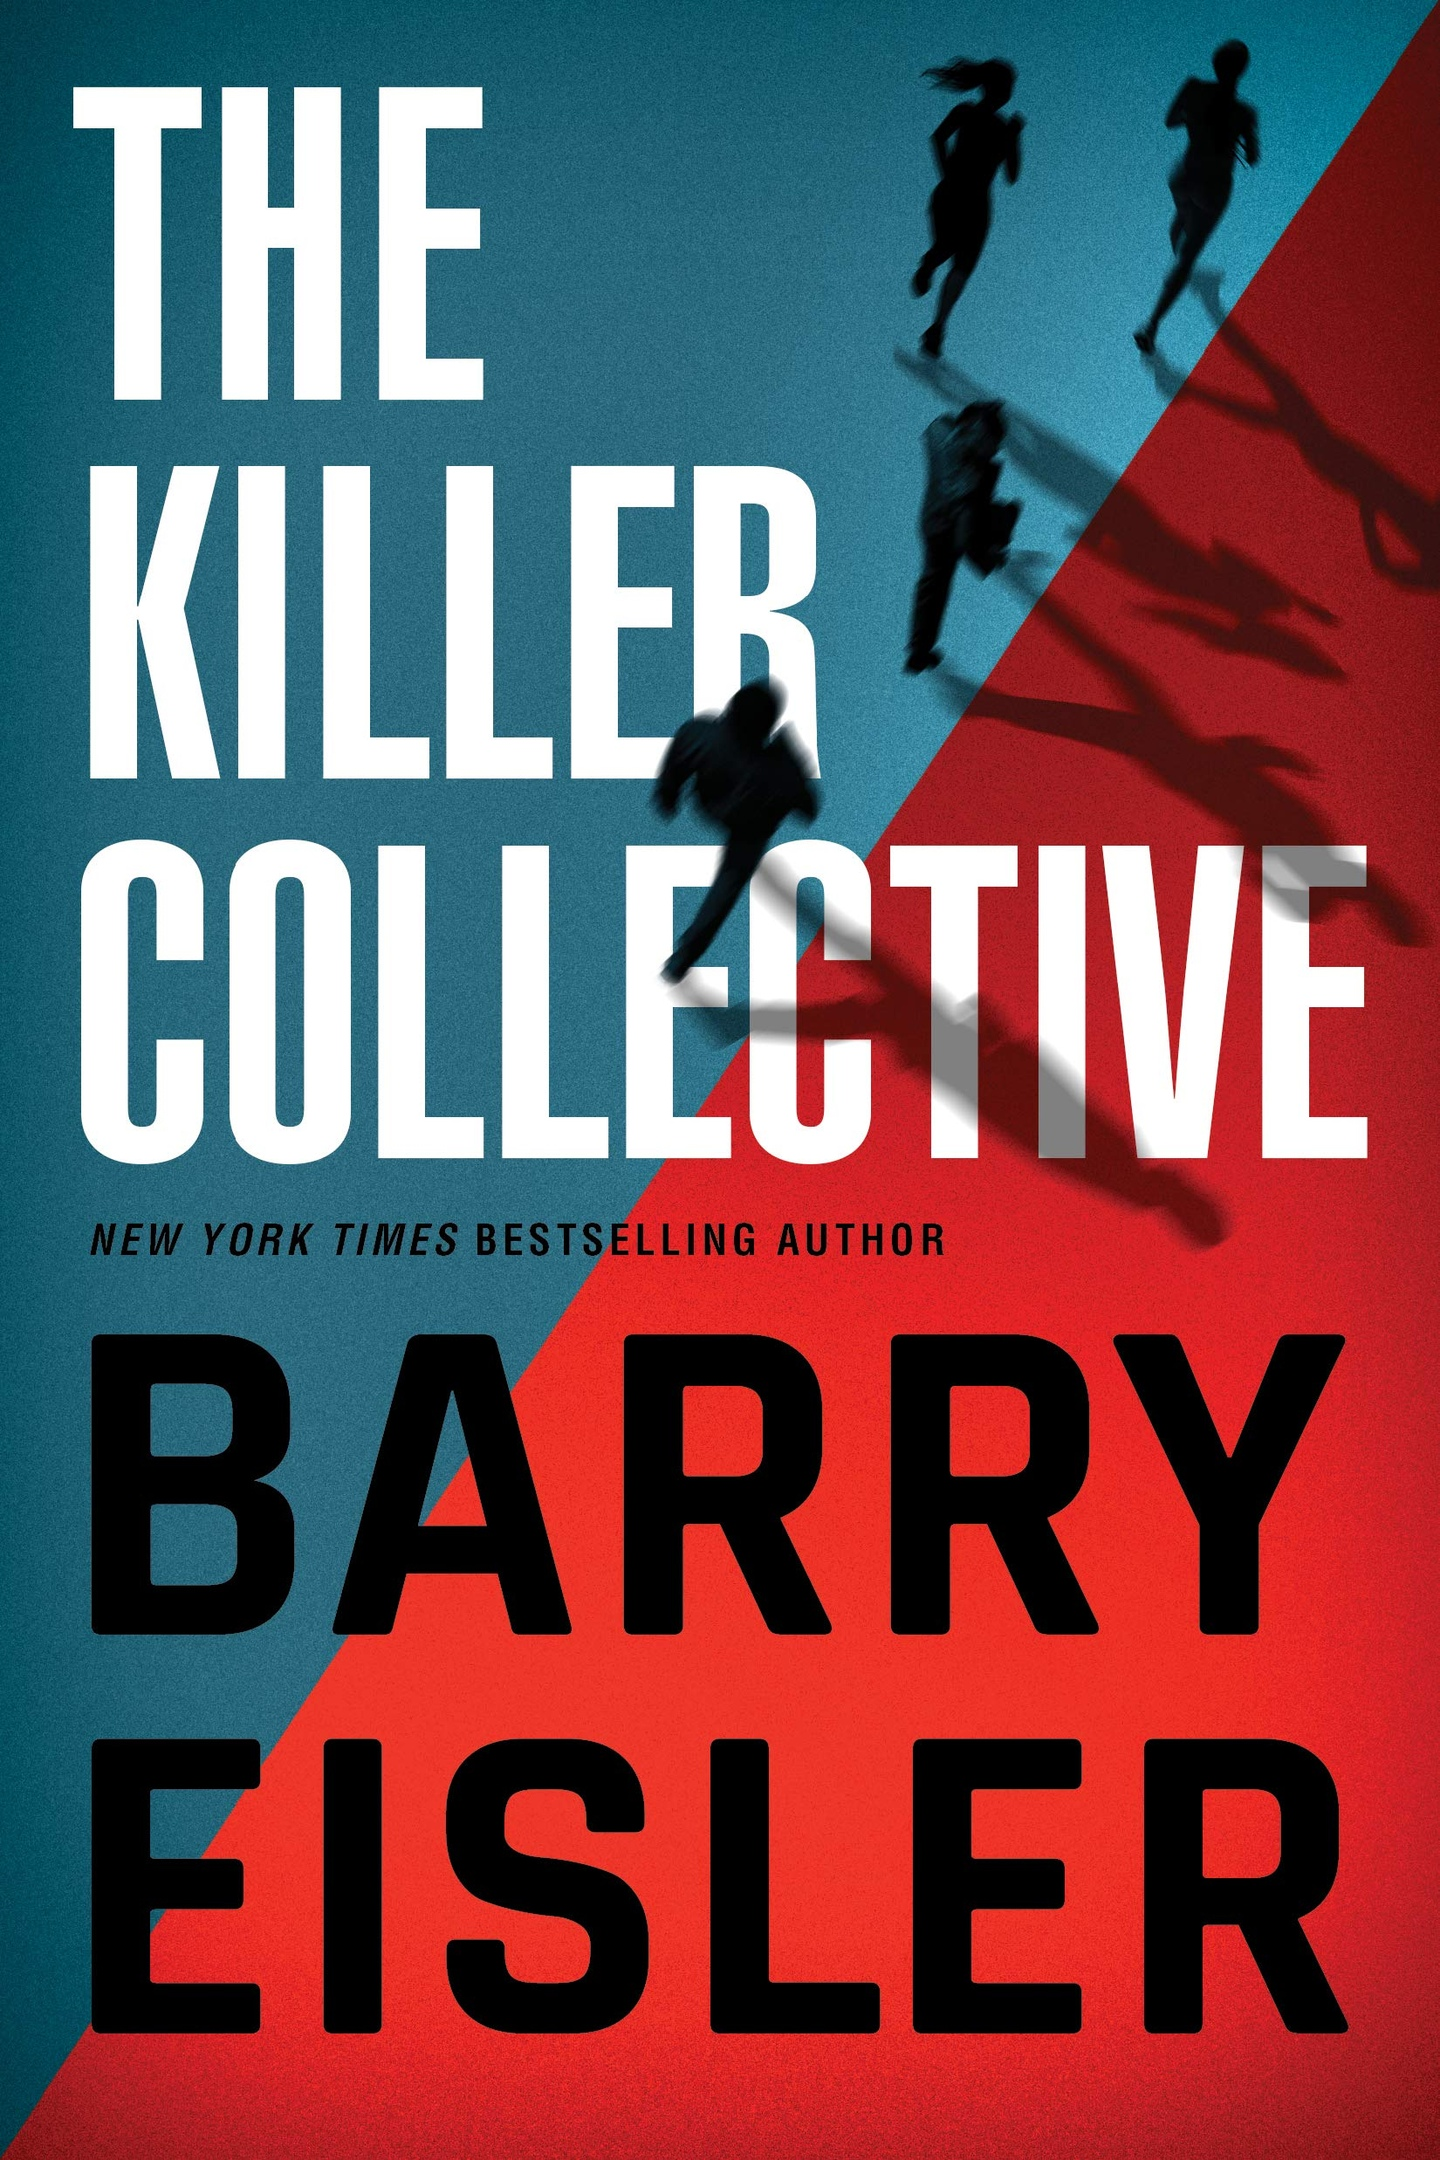 Barry Eisler – The Killer Collective